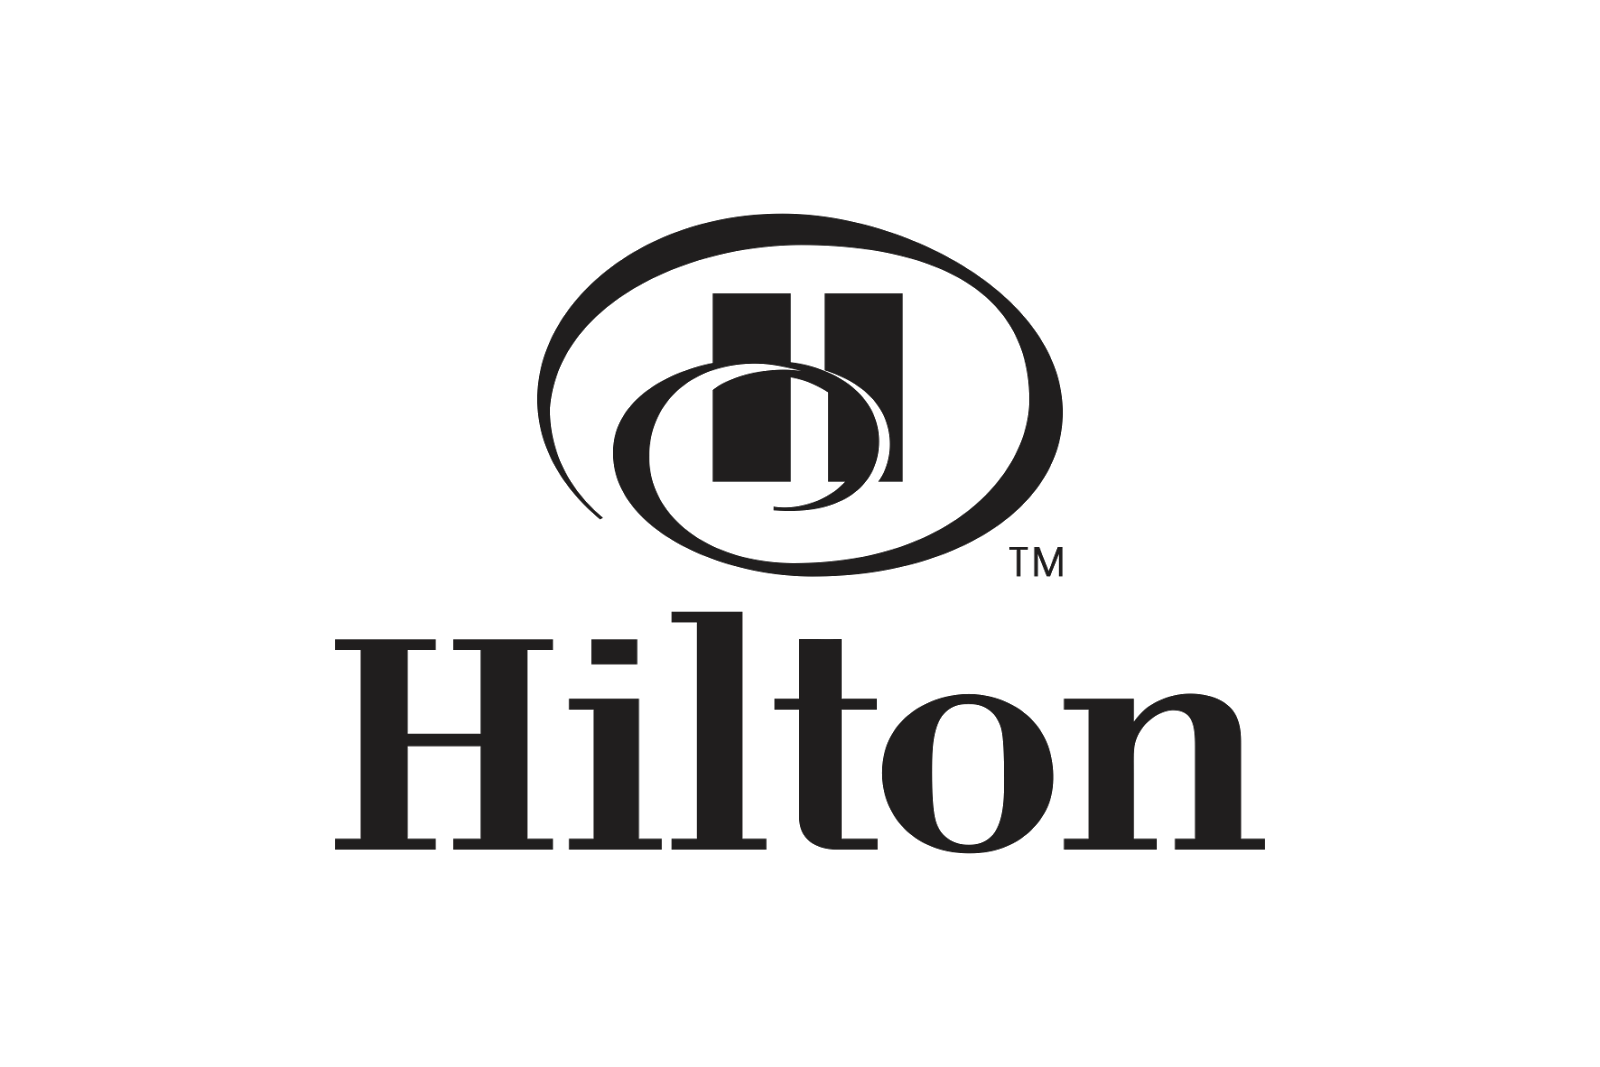 https://www.villiers.co.uk/wp-content/uploads/2019/04/Logo-Hilton.png